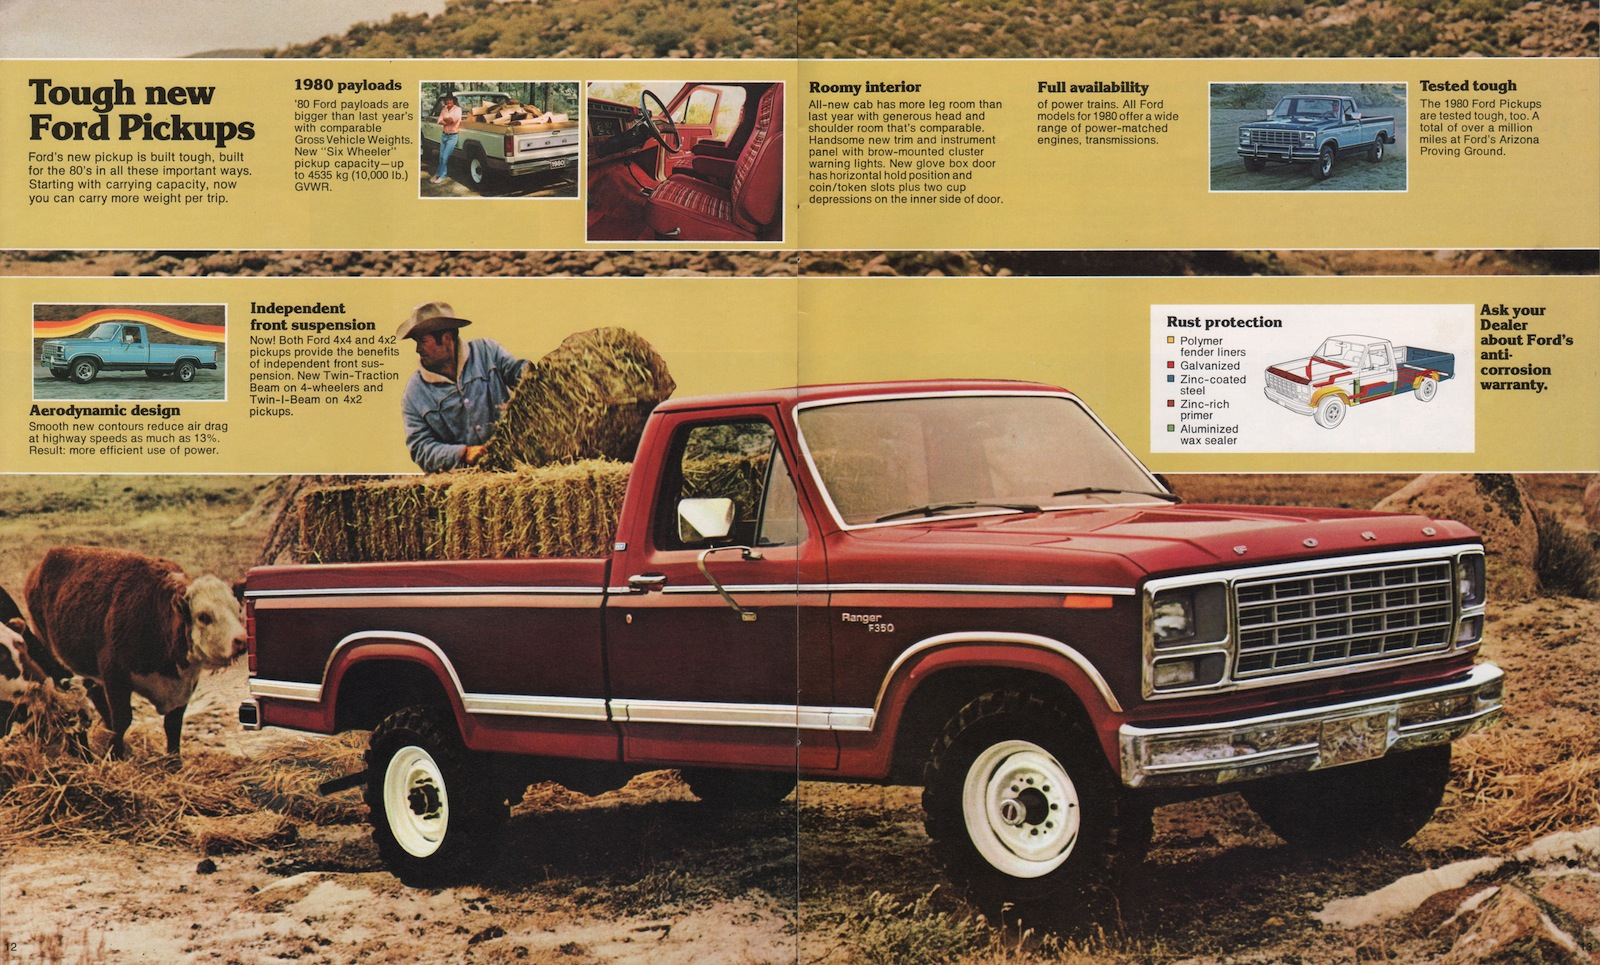 1980 Pickup Ford Truck Sales Brochure Bronco Interior Company Marks Emblems And Designs Are Trademarks Or Service Of Please Respect The Time It Took To Acquire These Brochures